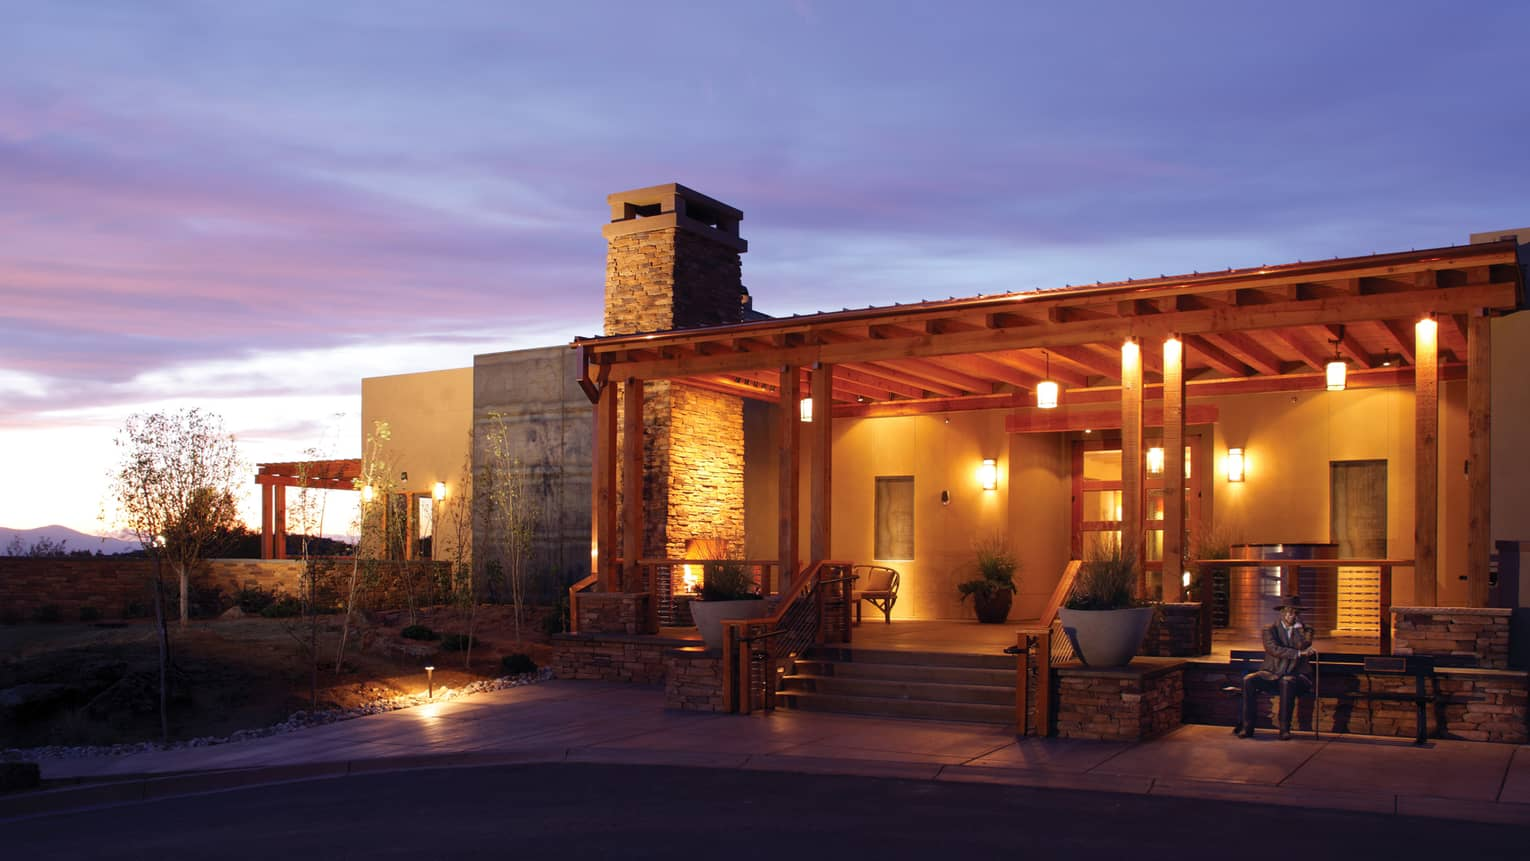 Stone exterior of Four Seasons Resort Rancho Encantado Santa Fe with lights at night